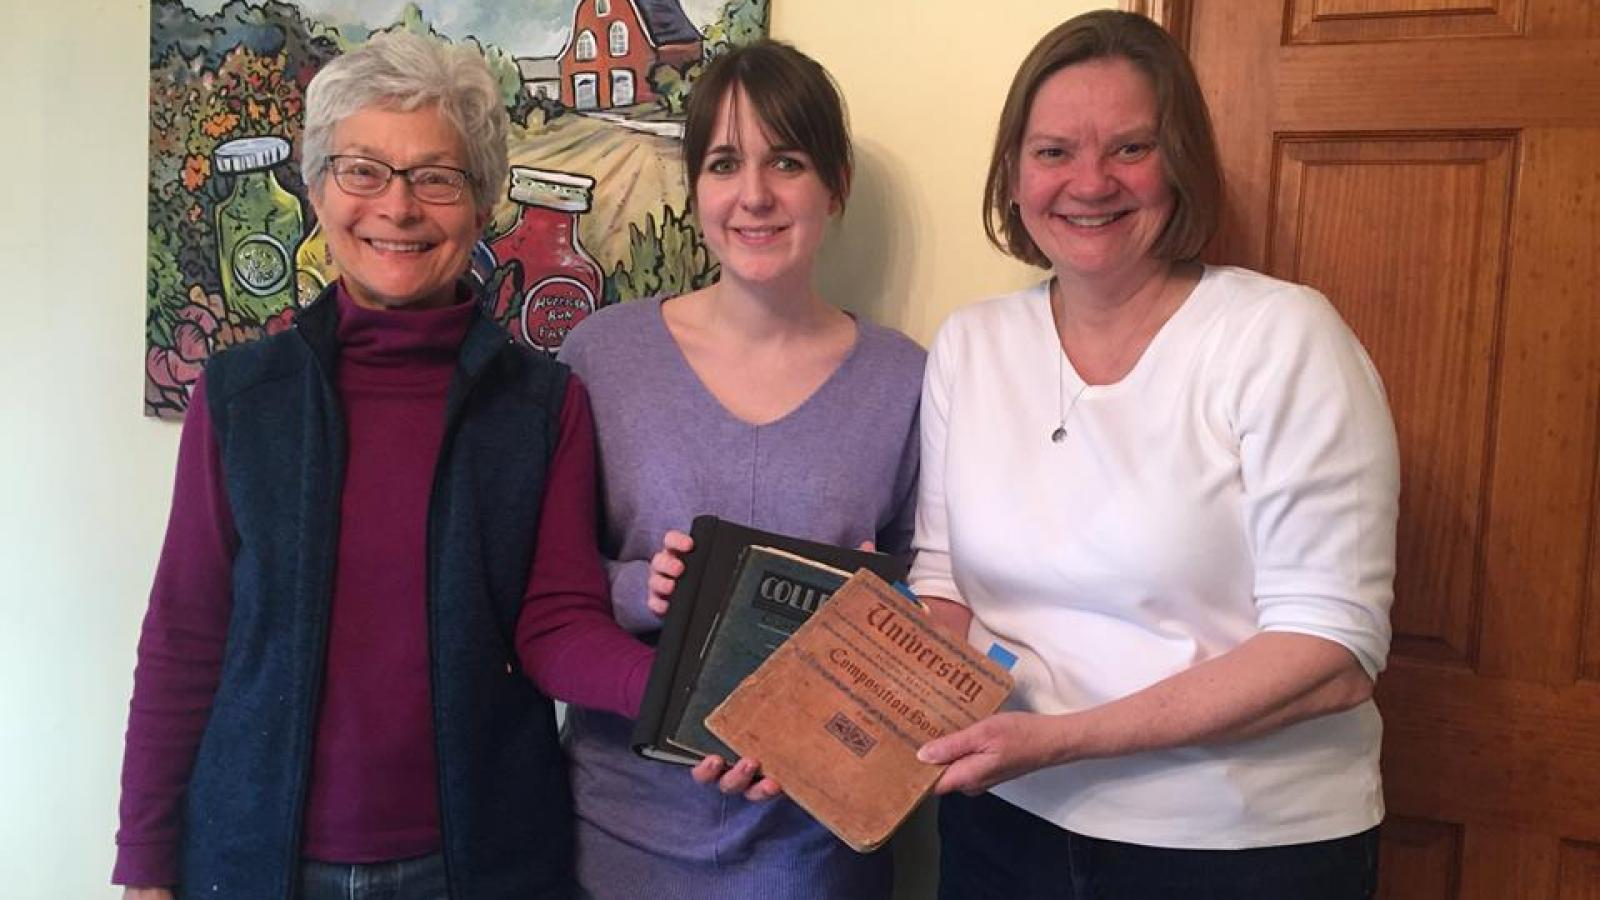 Barb Bradbury (left) and fieldworkers Mariah Marsden (center) and Laura Thomas (right).